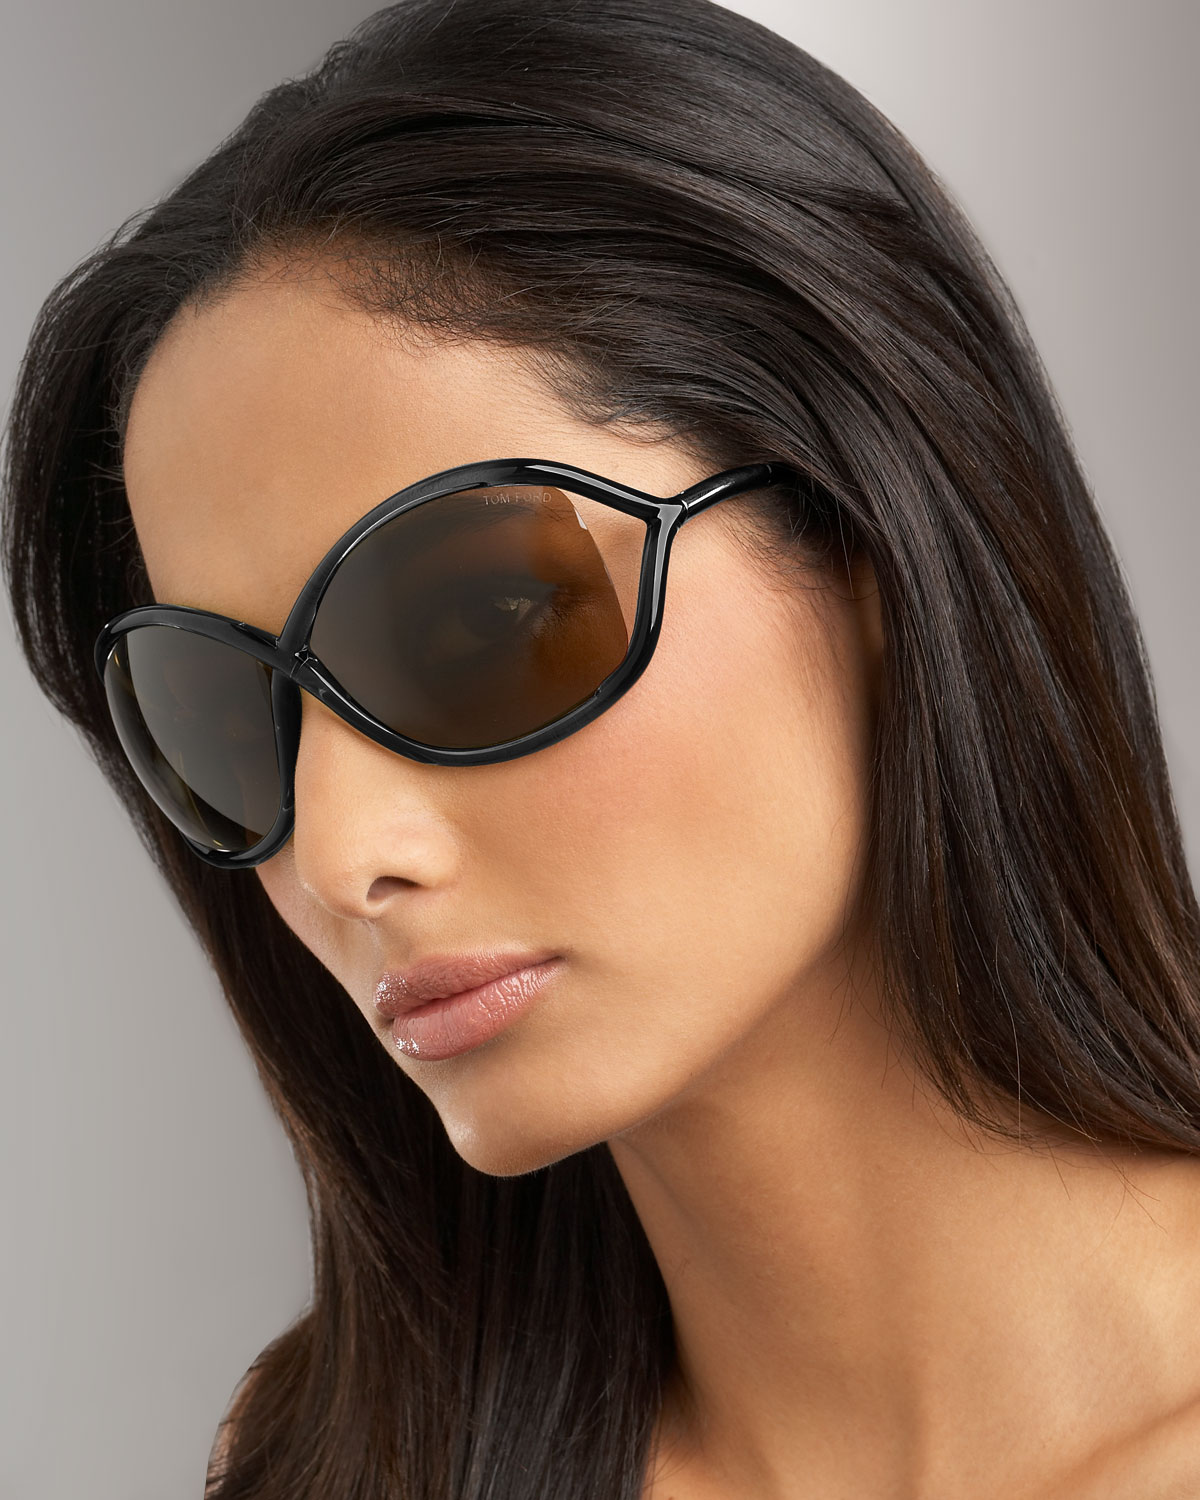 af8a711a51 Lyst - Tom Ford Whitney Sunglasses